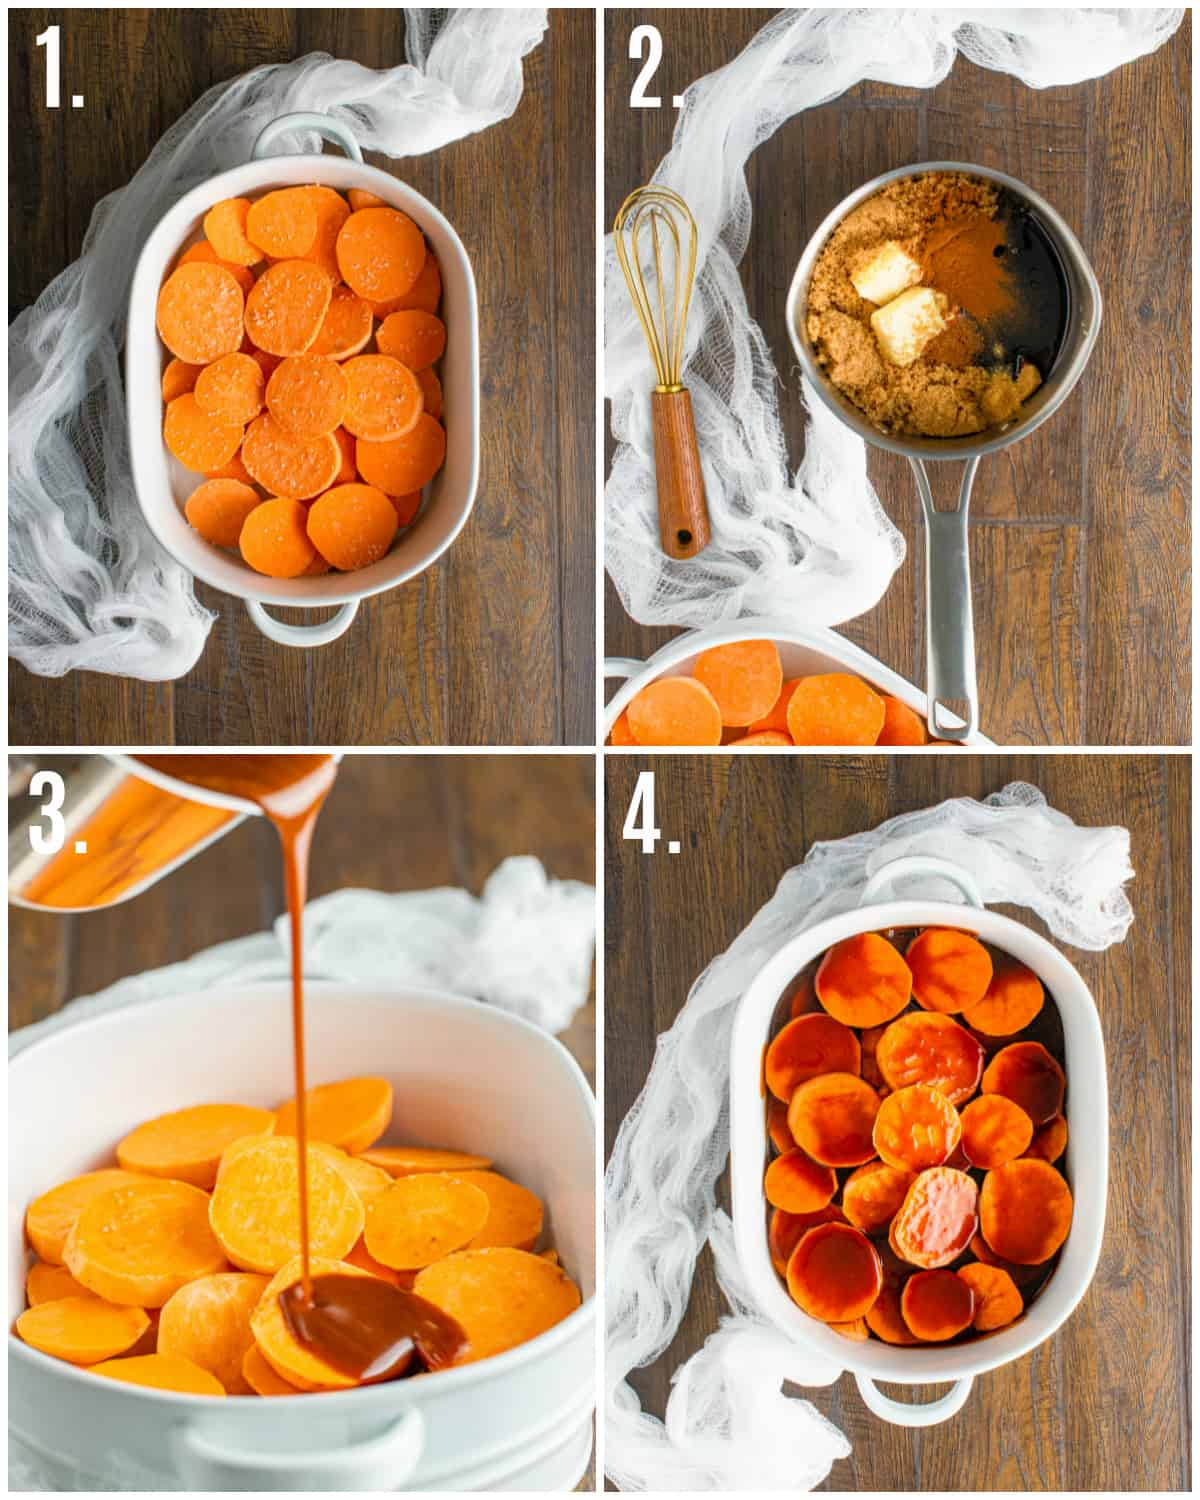 Step by step photos on how to make Candied Sweet Potatoes